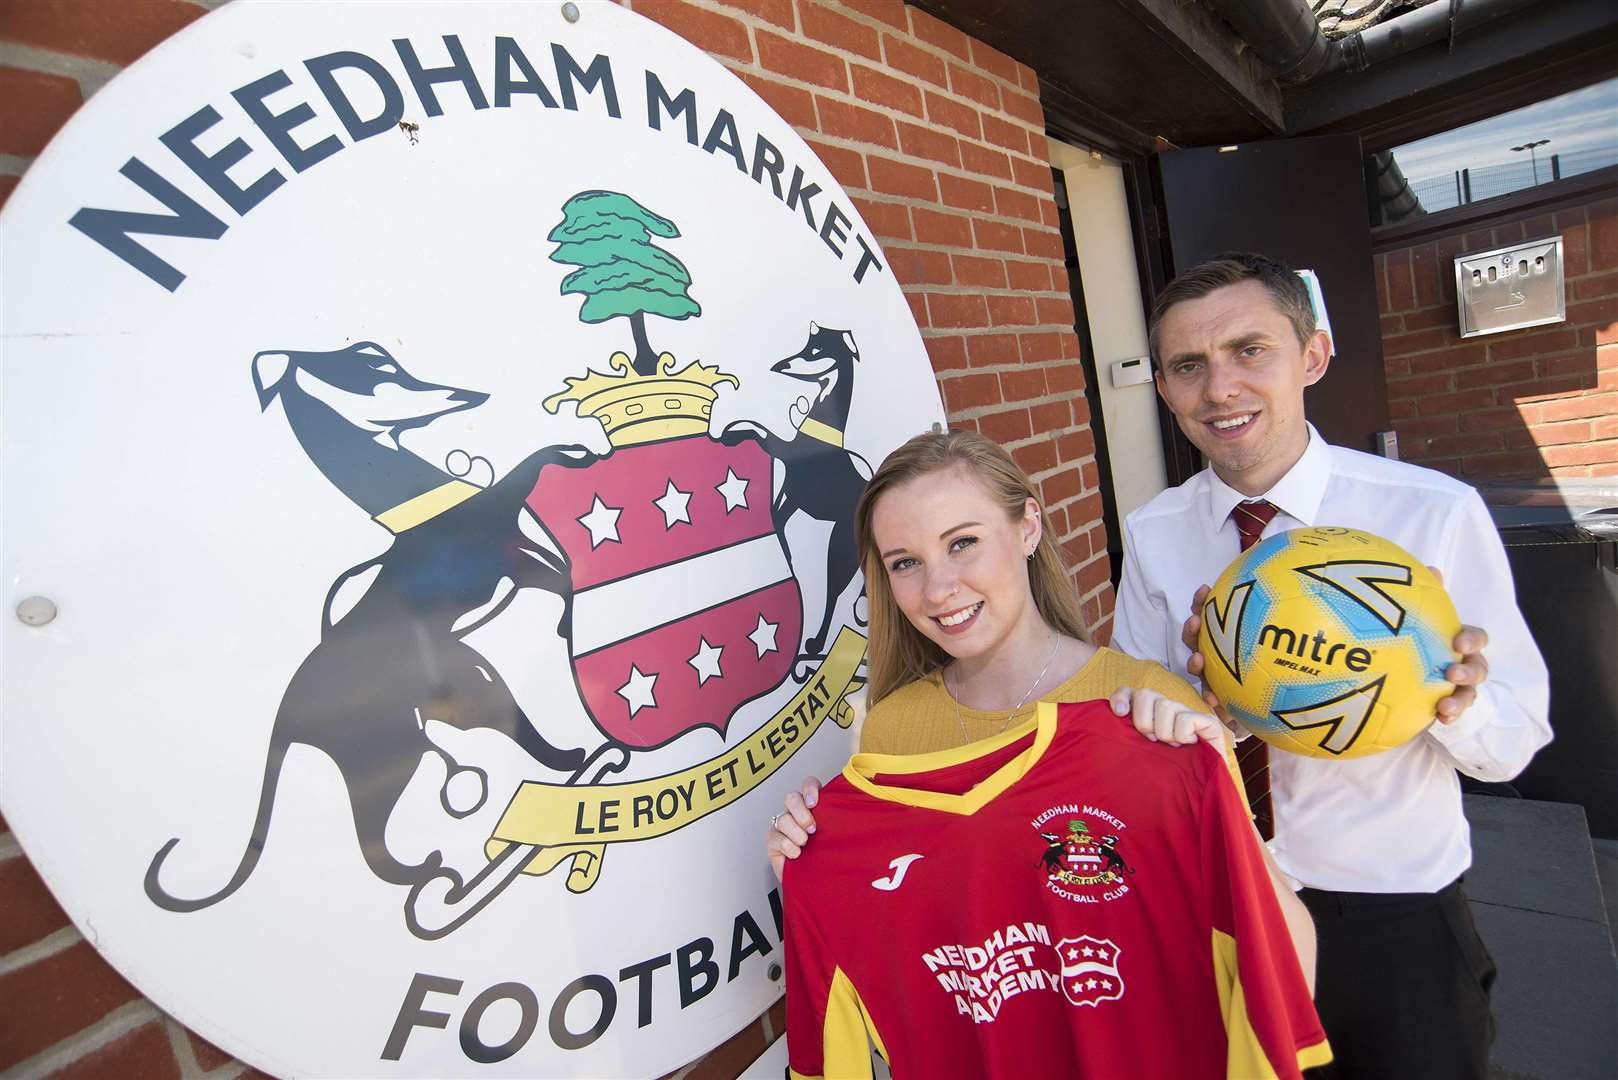 EXCITING START: New women's player-manager Freya Louis with academy director Robert Peace